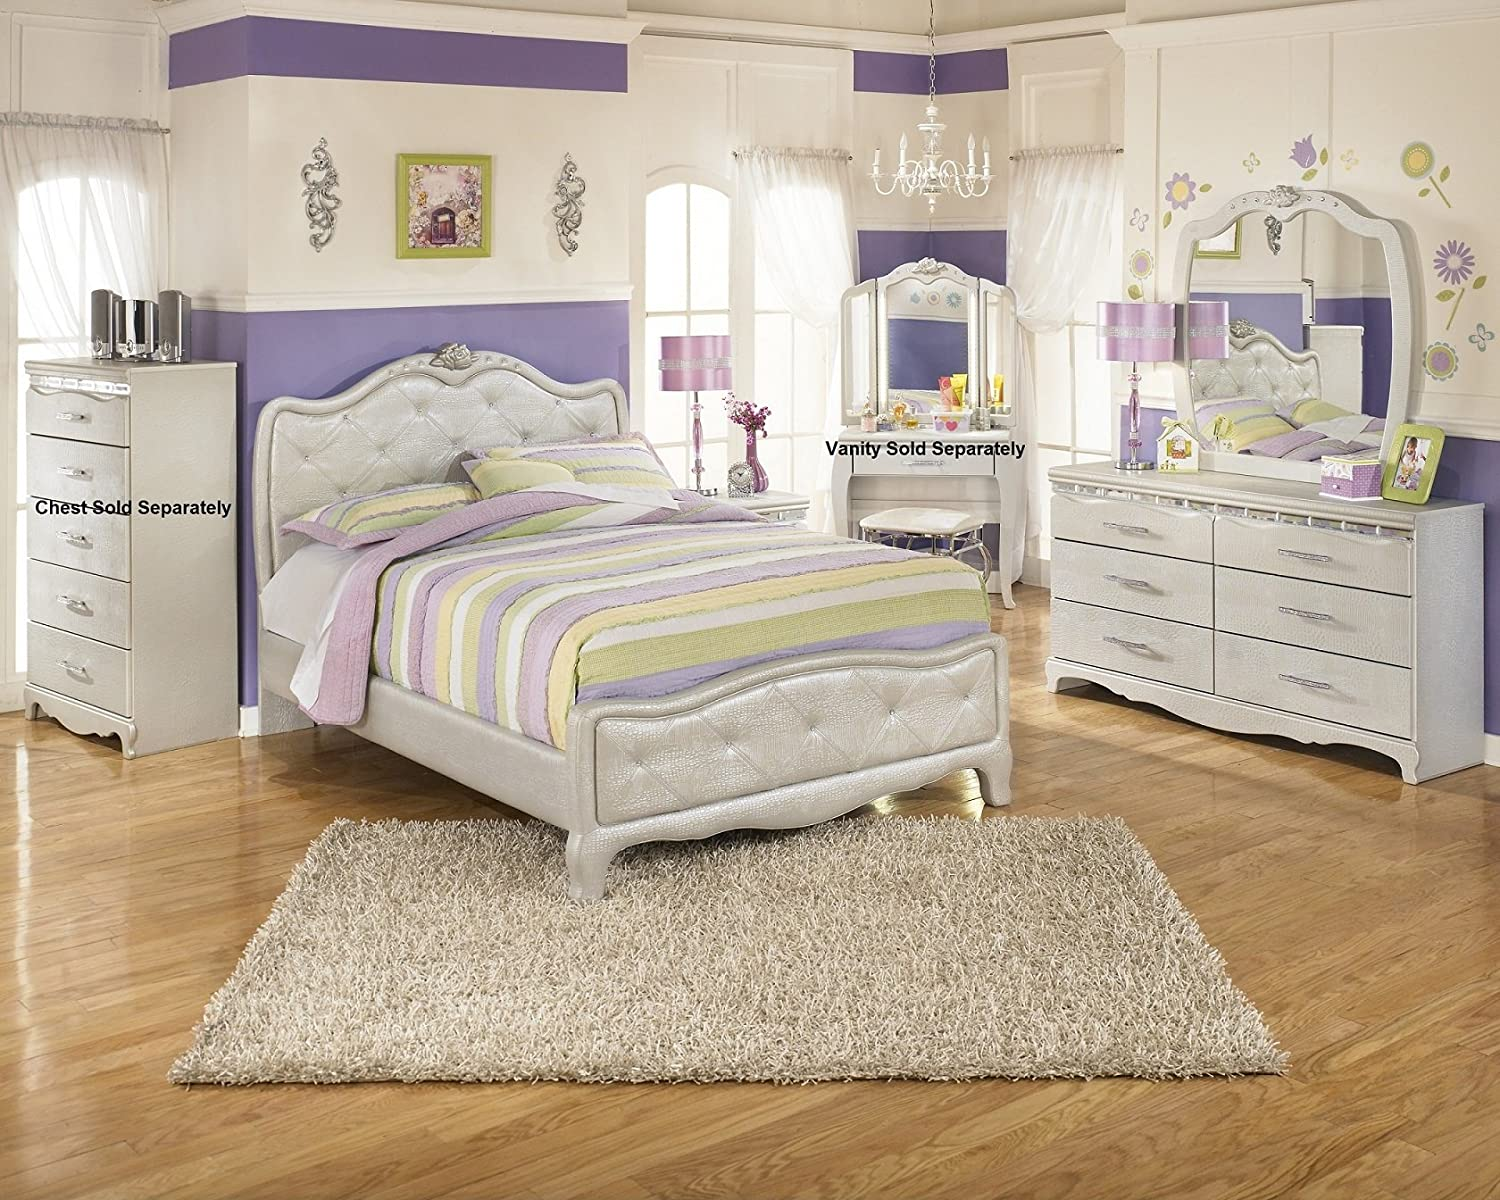 ashley group f item number full bed design products lindy trinell signature set by s bedroom